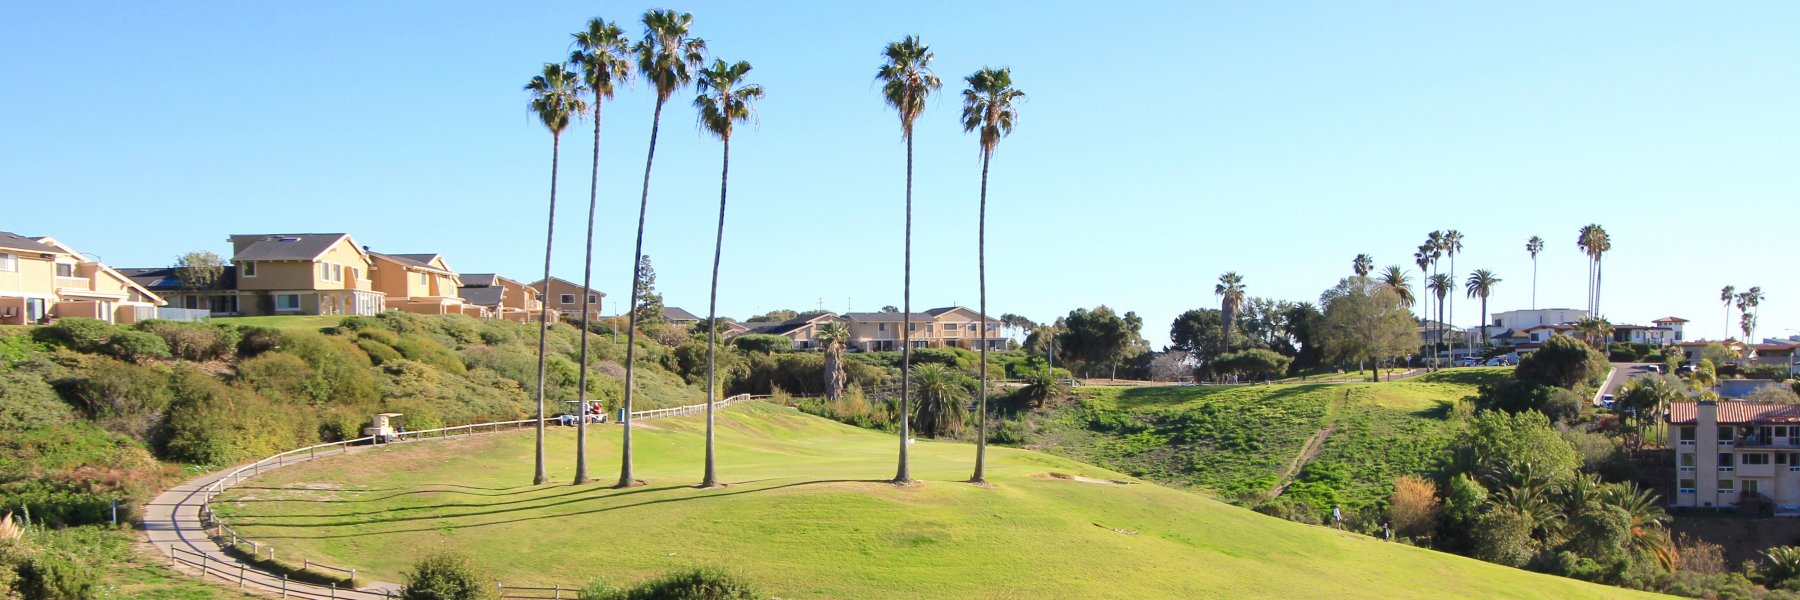 Presidential Heights is a community of homes in San Clemente California